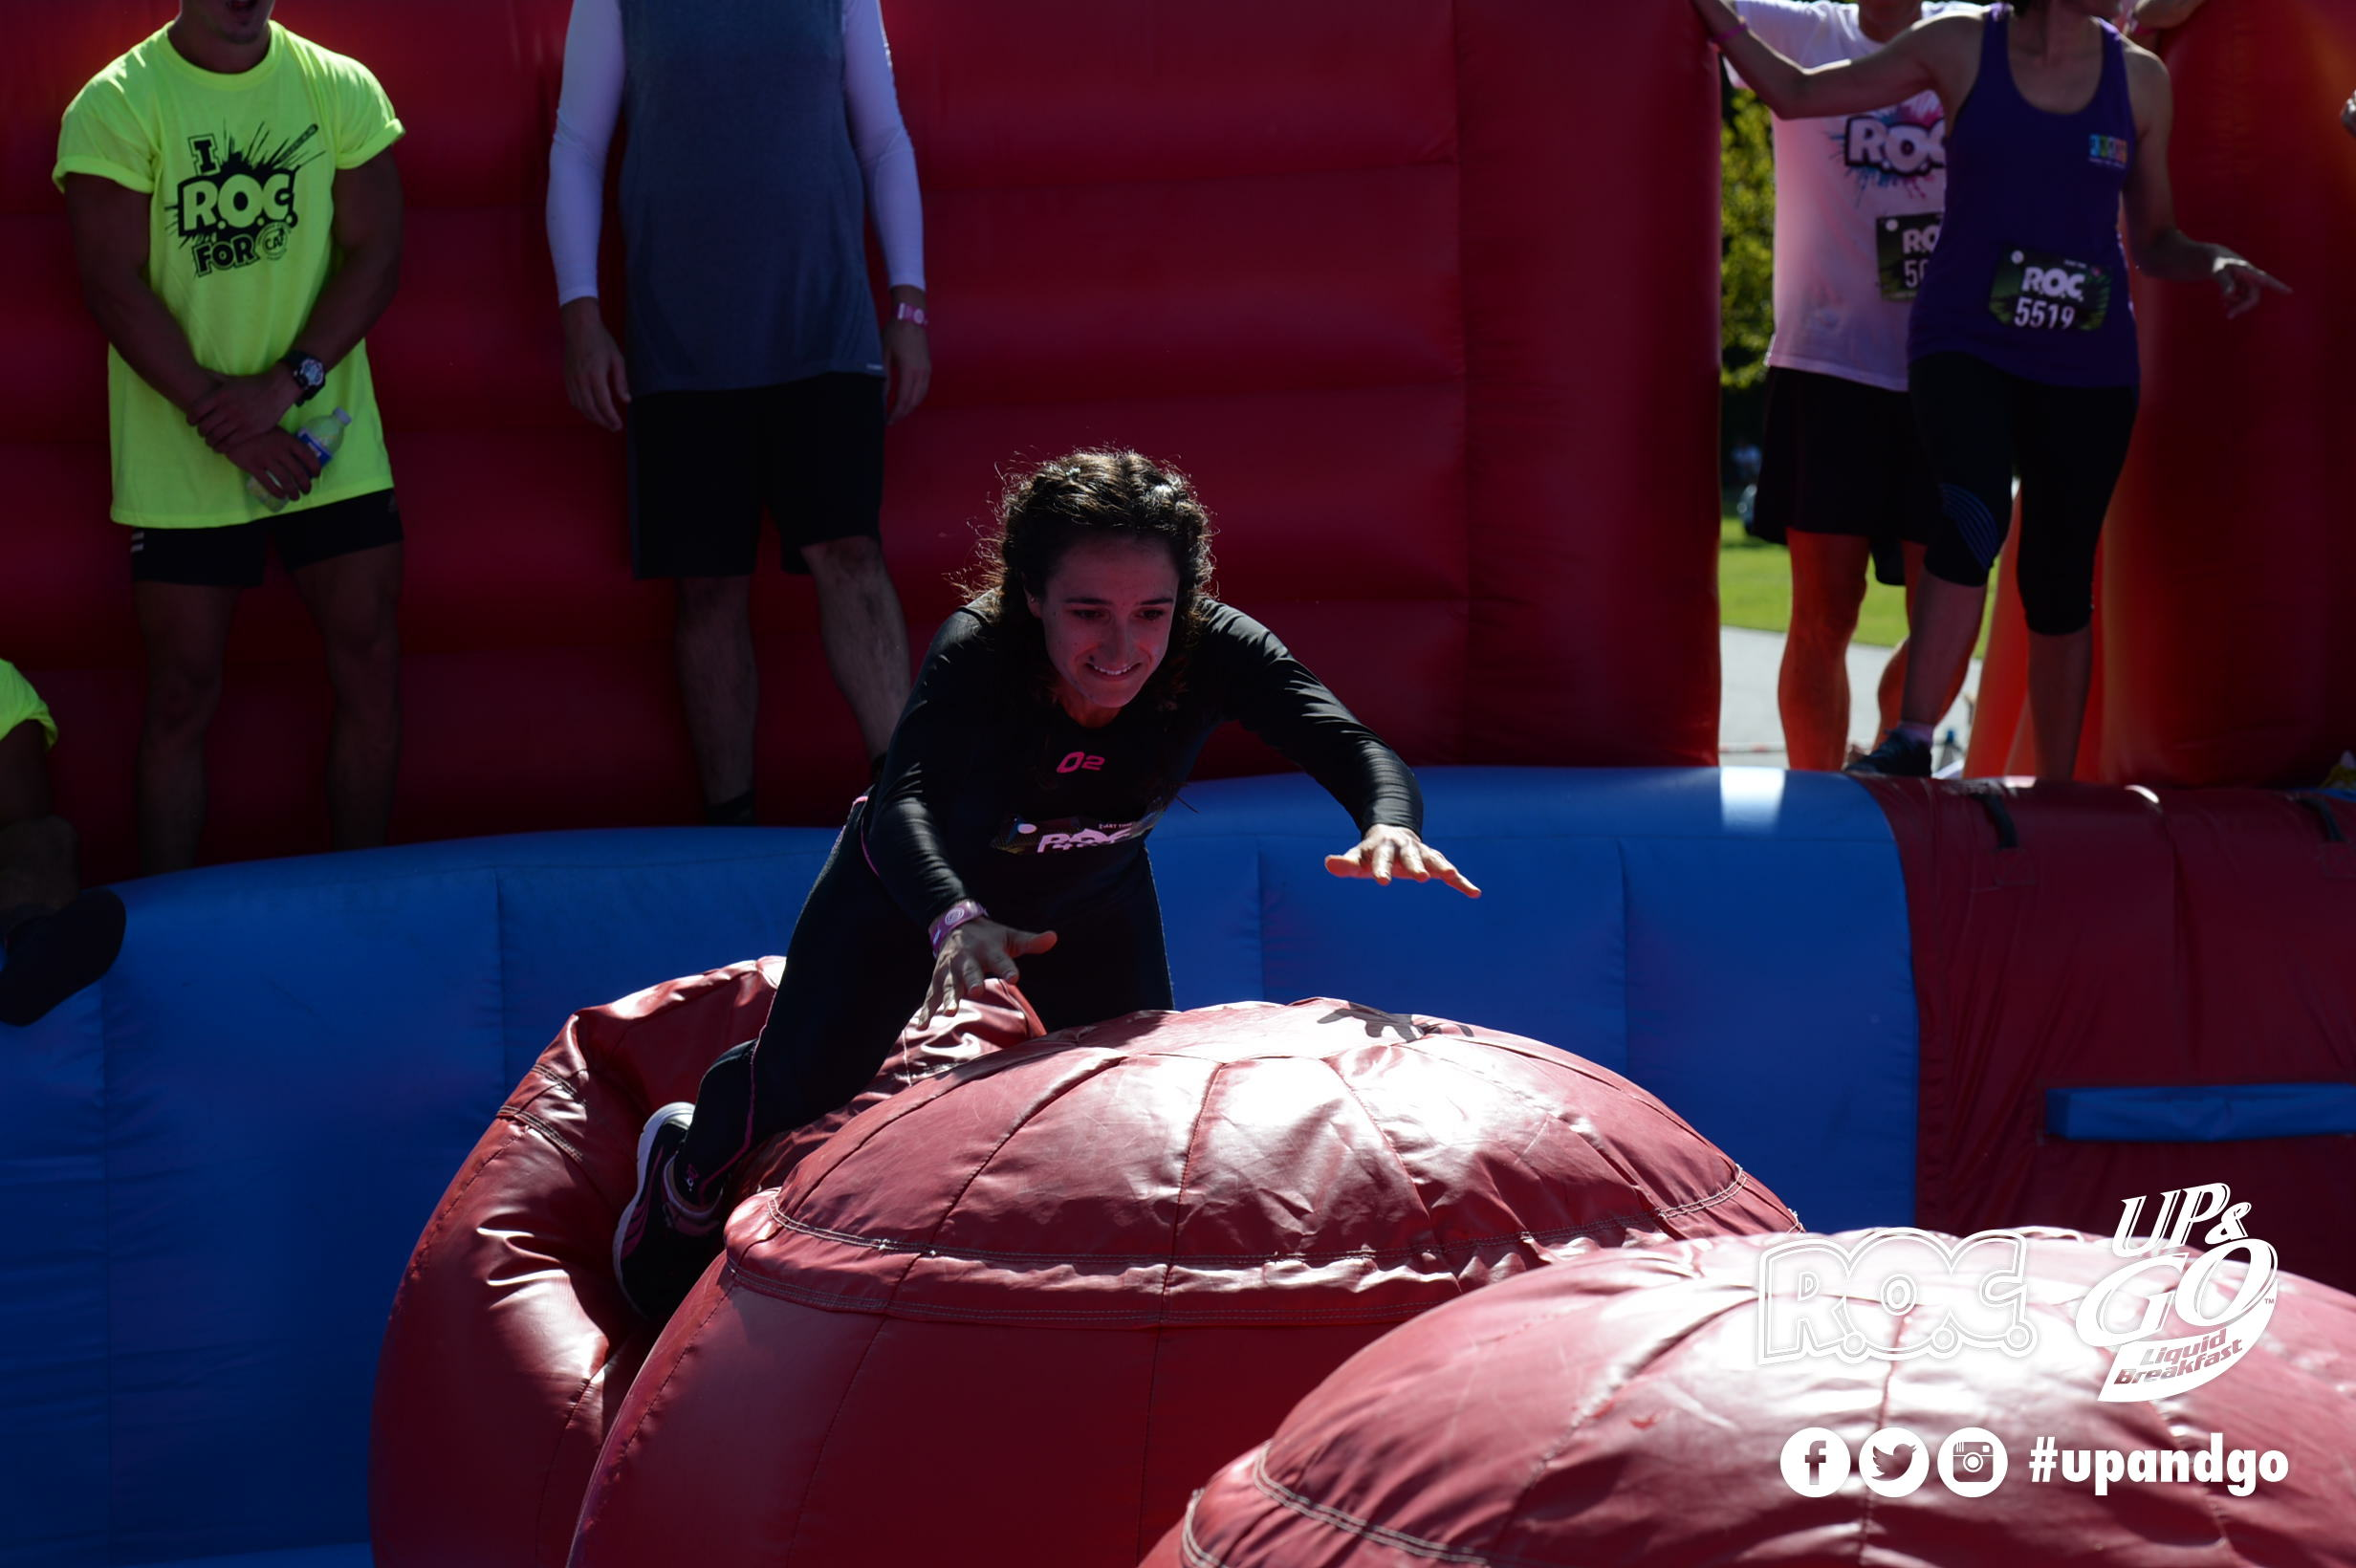 Amanda Bergamin completing the R.O.C obstacle course